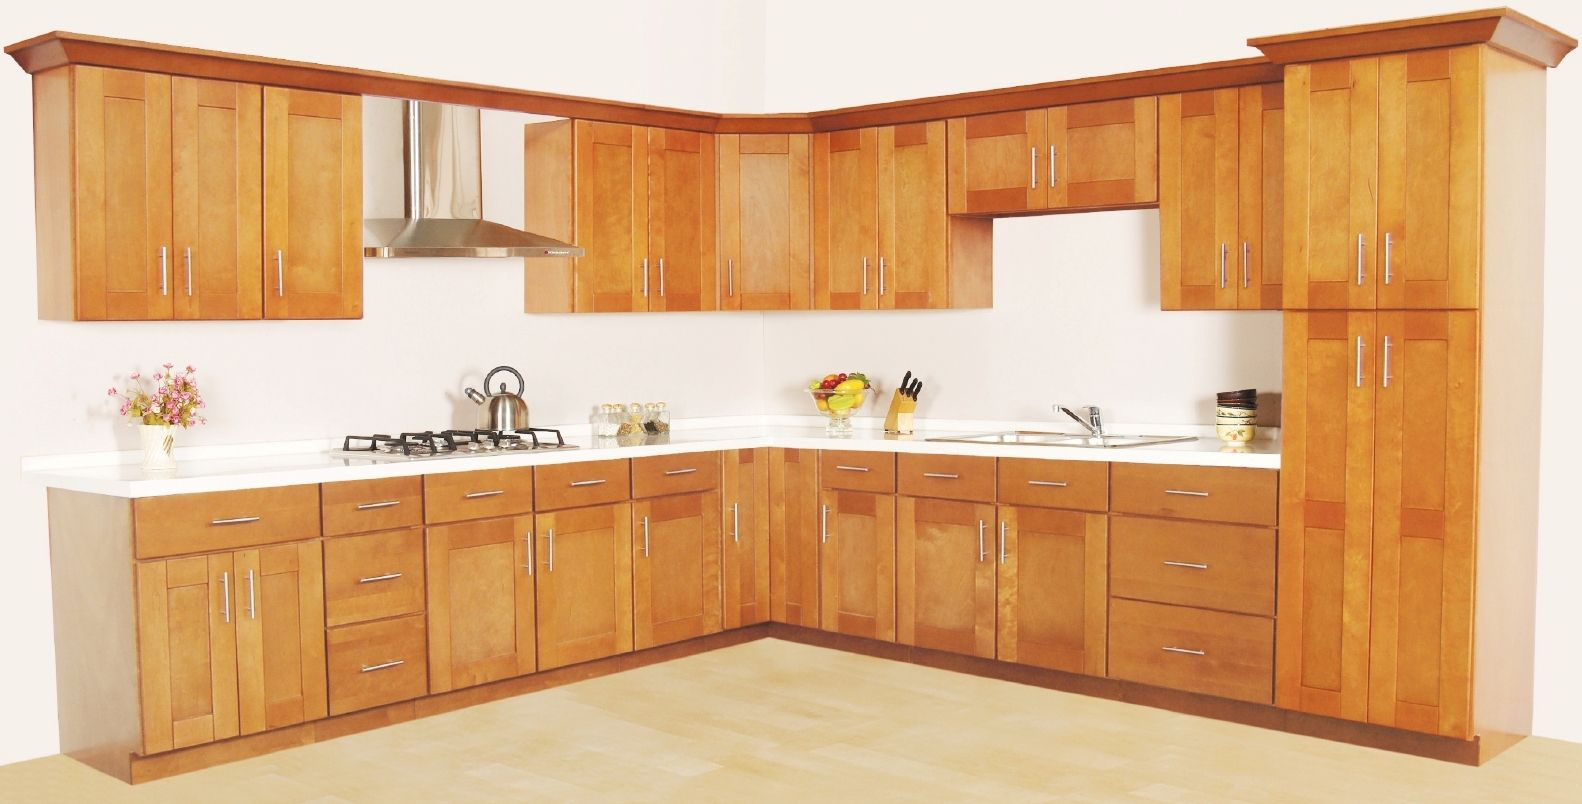 curved wire pull shaker cabinet Google